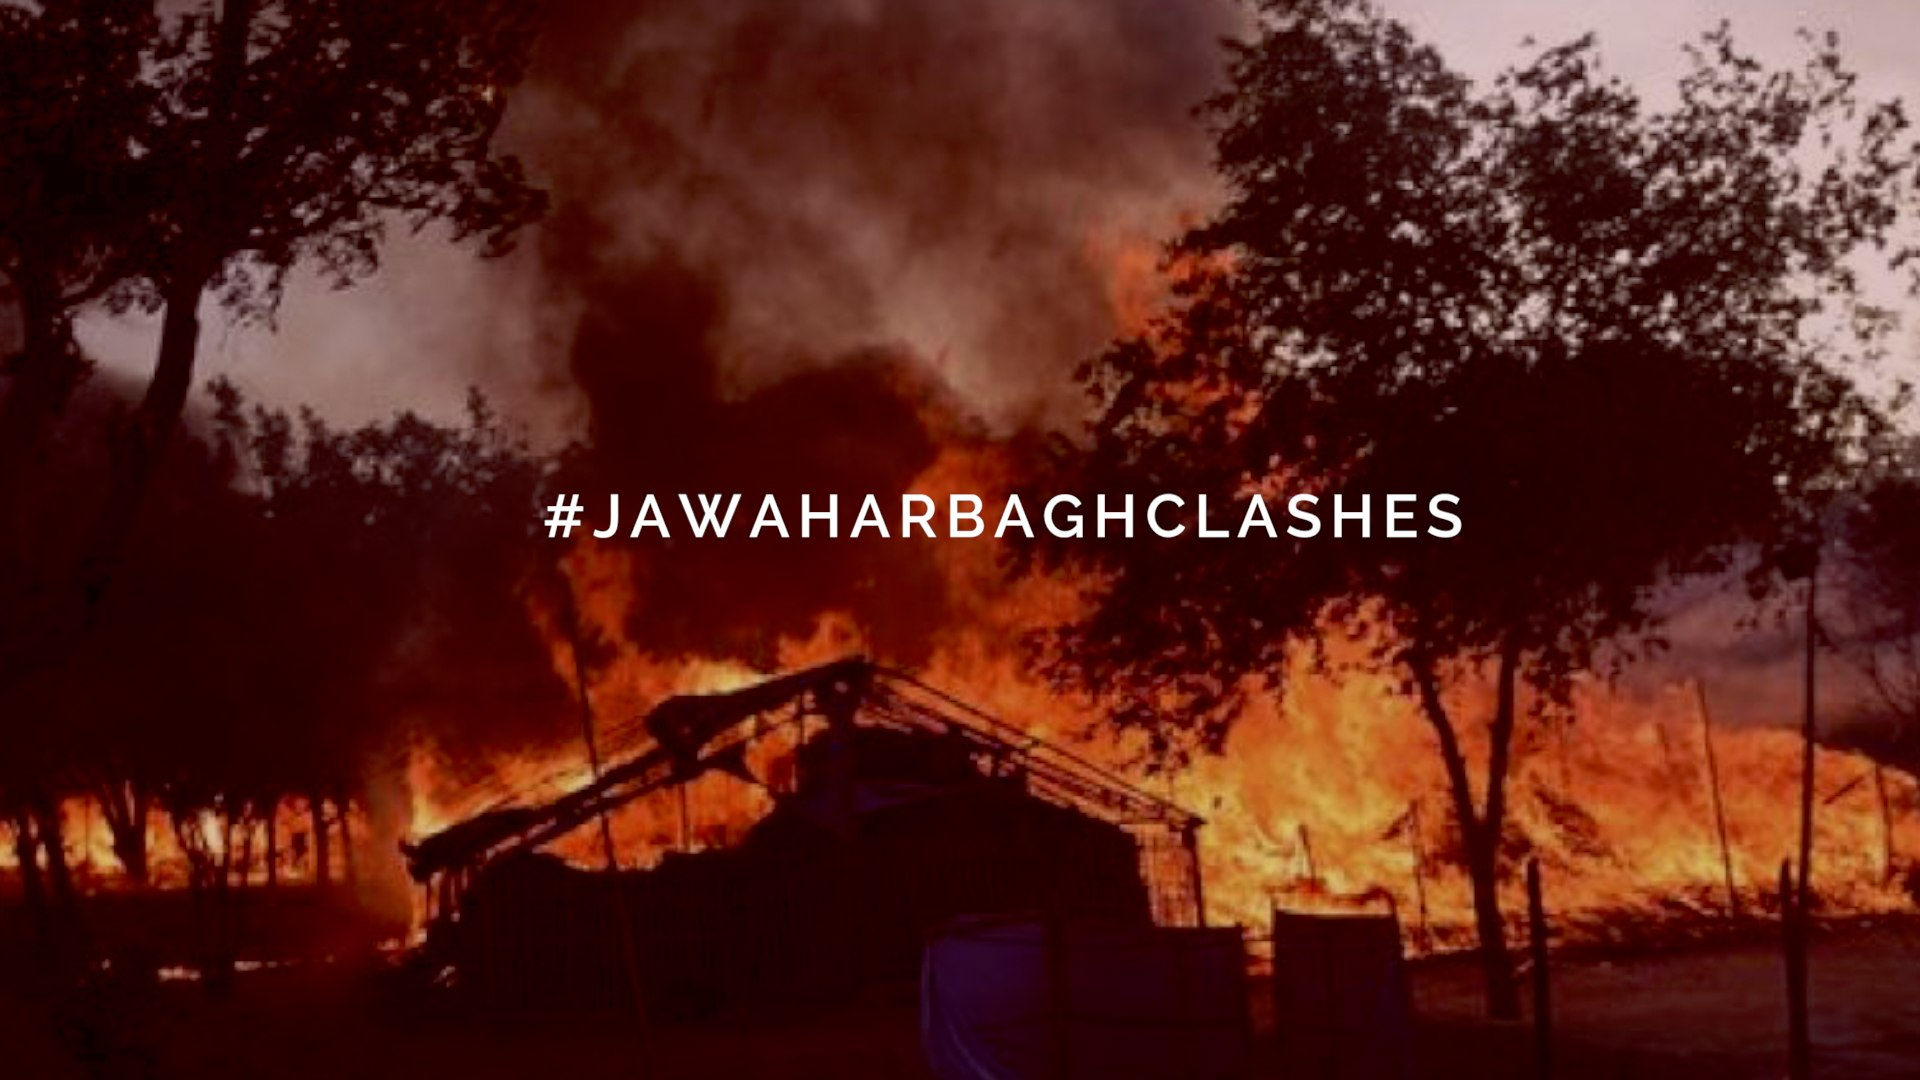 #JawaharBaghClashes 40 days after the Jawahar Bagh killings, Ramvriksh's family speaks out